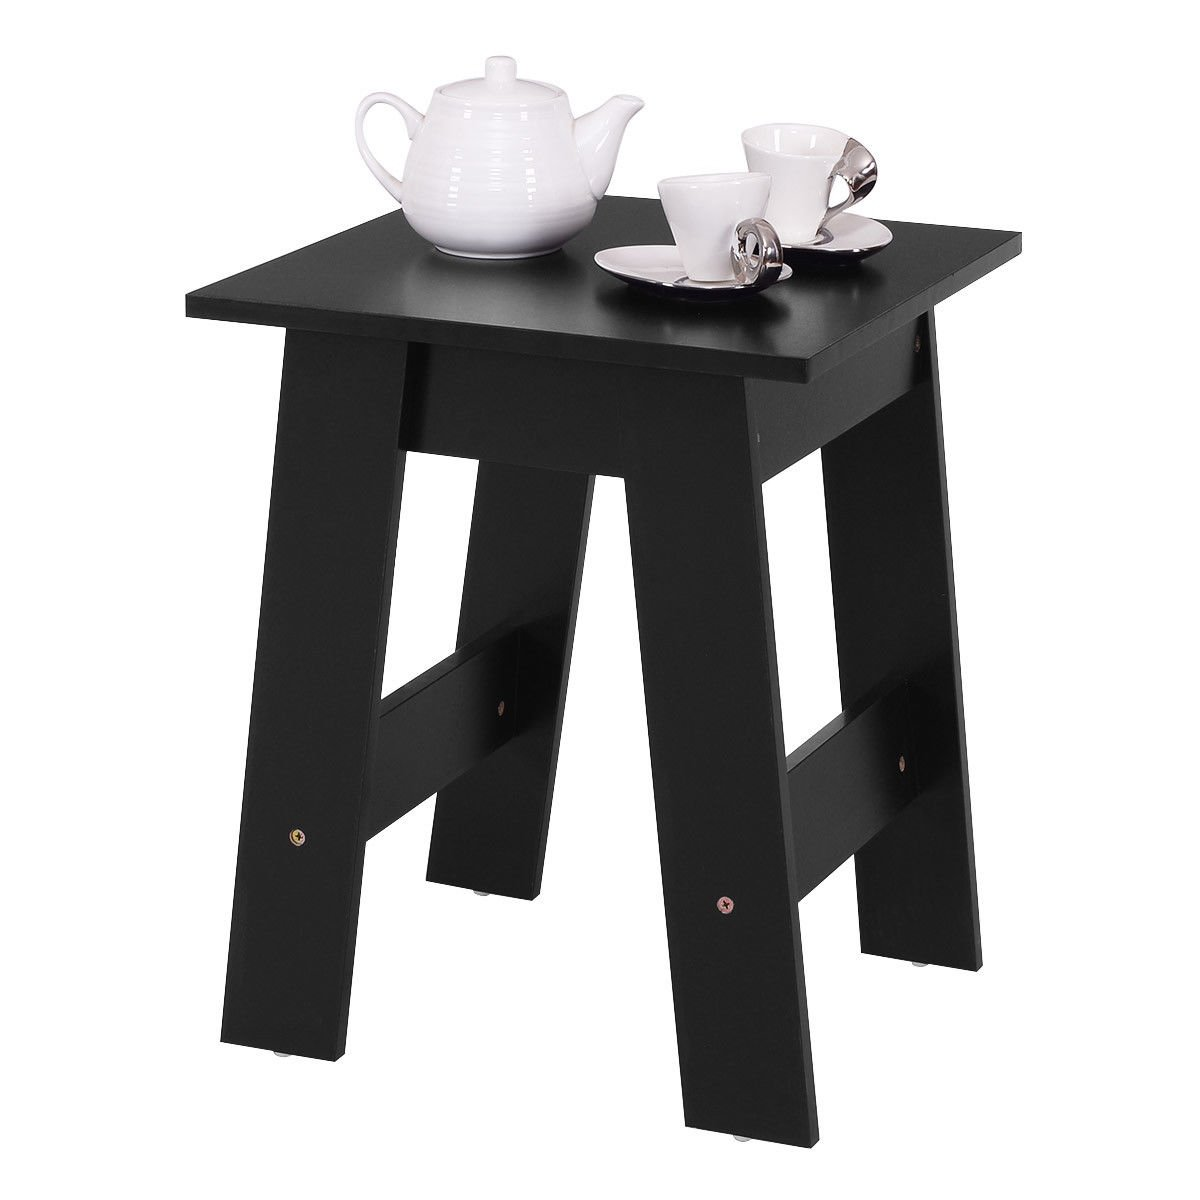 way modern wood end table accent coffee simple design side desk black free shipping orders over target blue small oak monarch wicker patio furniture sets mirrored waterproof cover